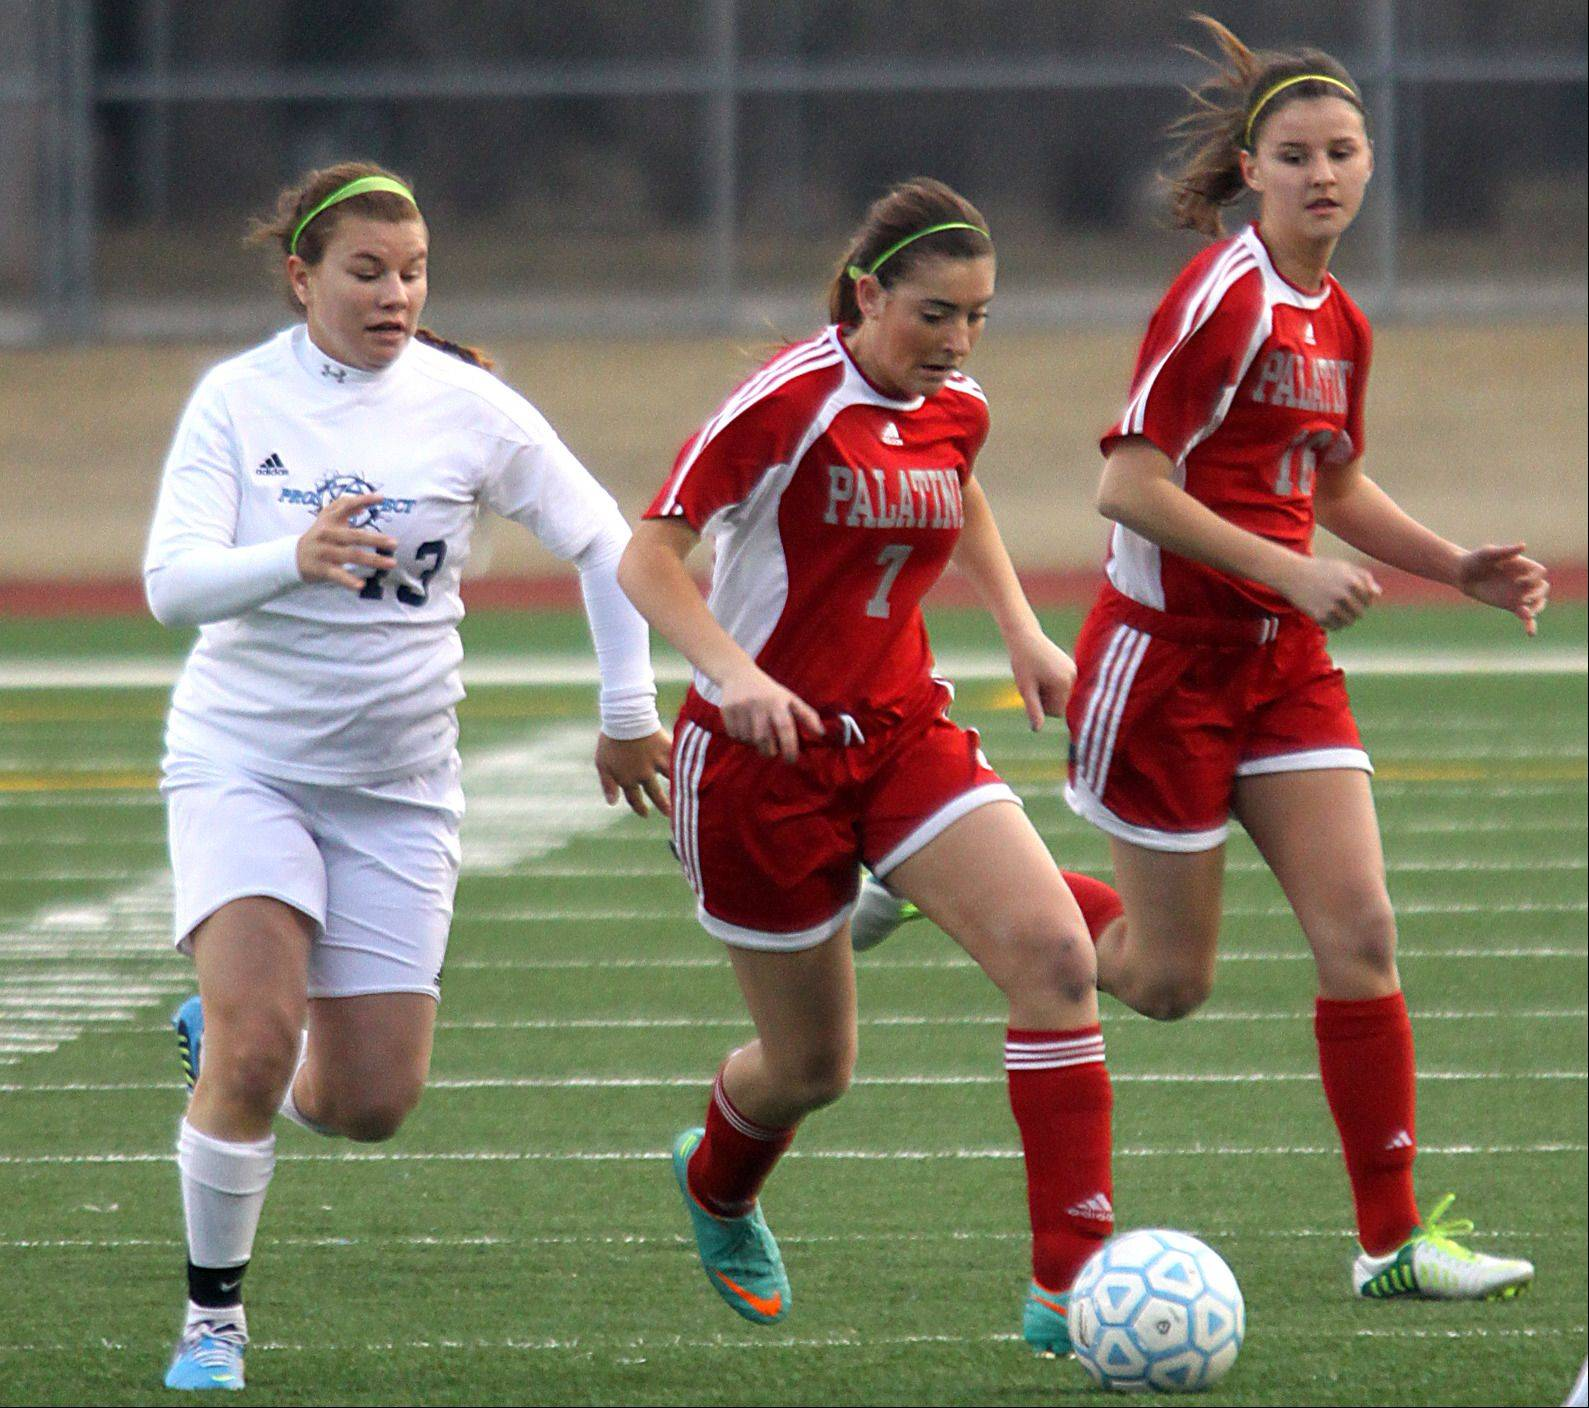 Prospect's Rosie Pettenuzzo, left, pursues Palatine's Michelle Raymond, center, as Palatine's Erin Mayer, right, follows the play during Thursday's game at George Gattas Memorial Stadium.